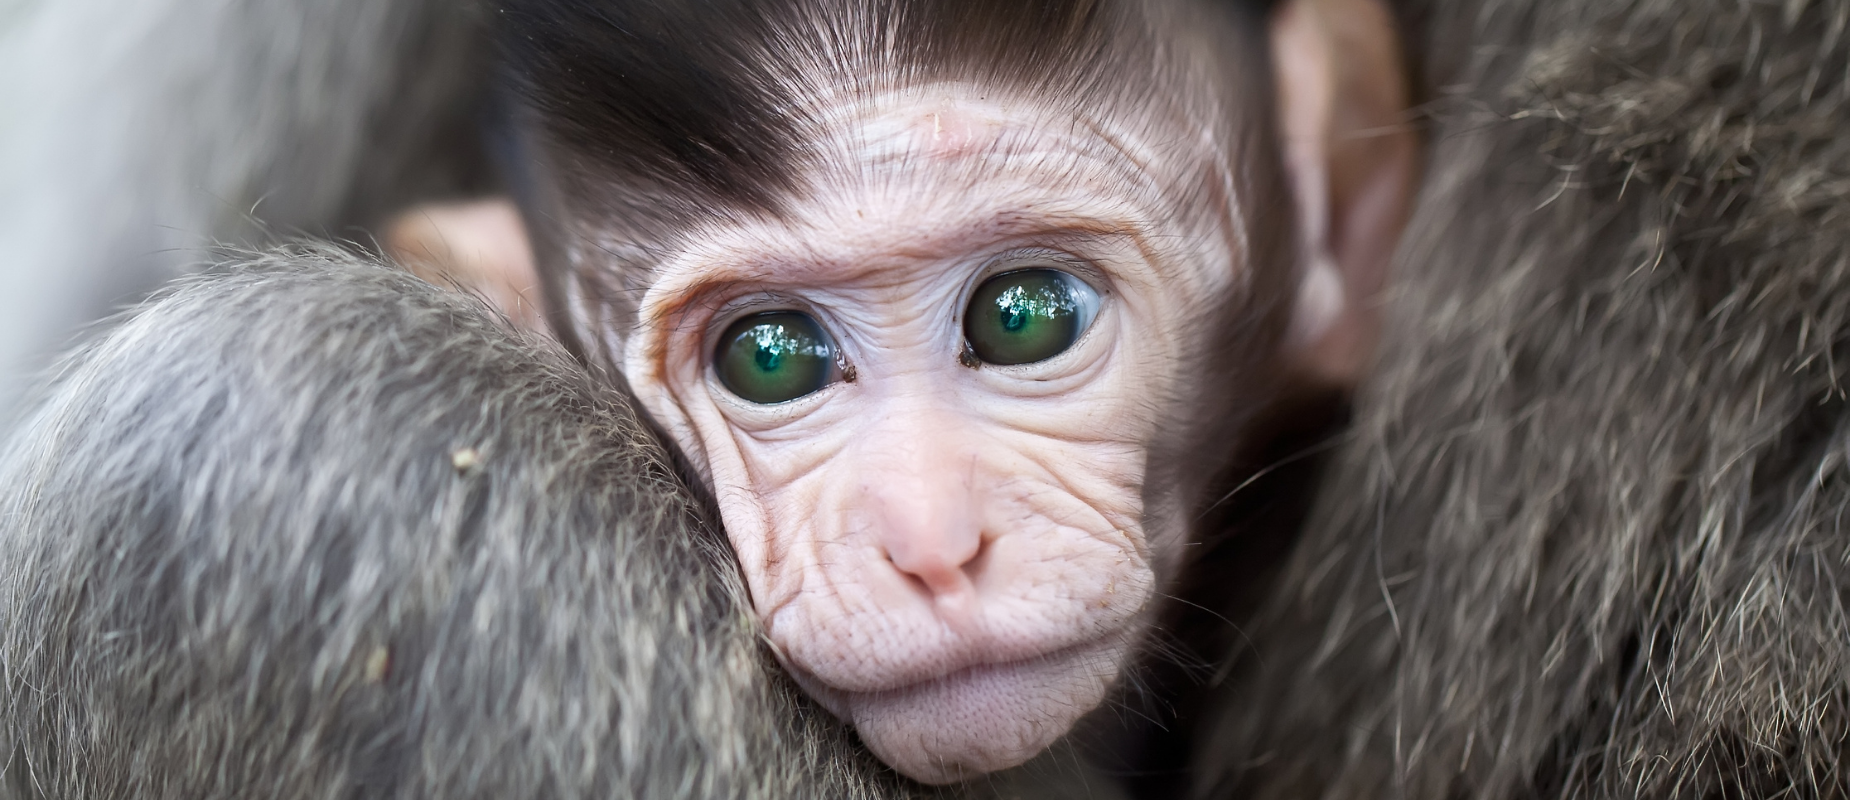 A close-up photo of a green-eyed baby monkey